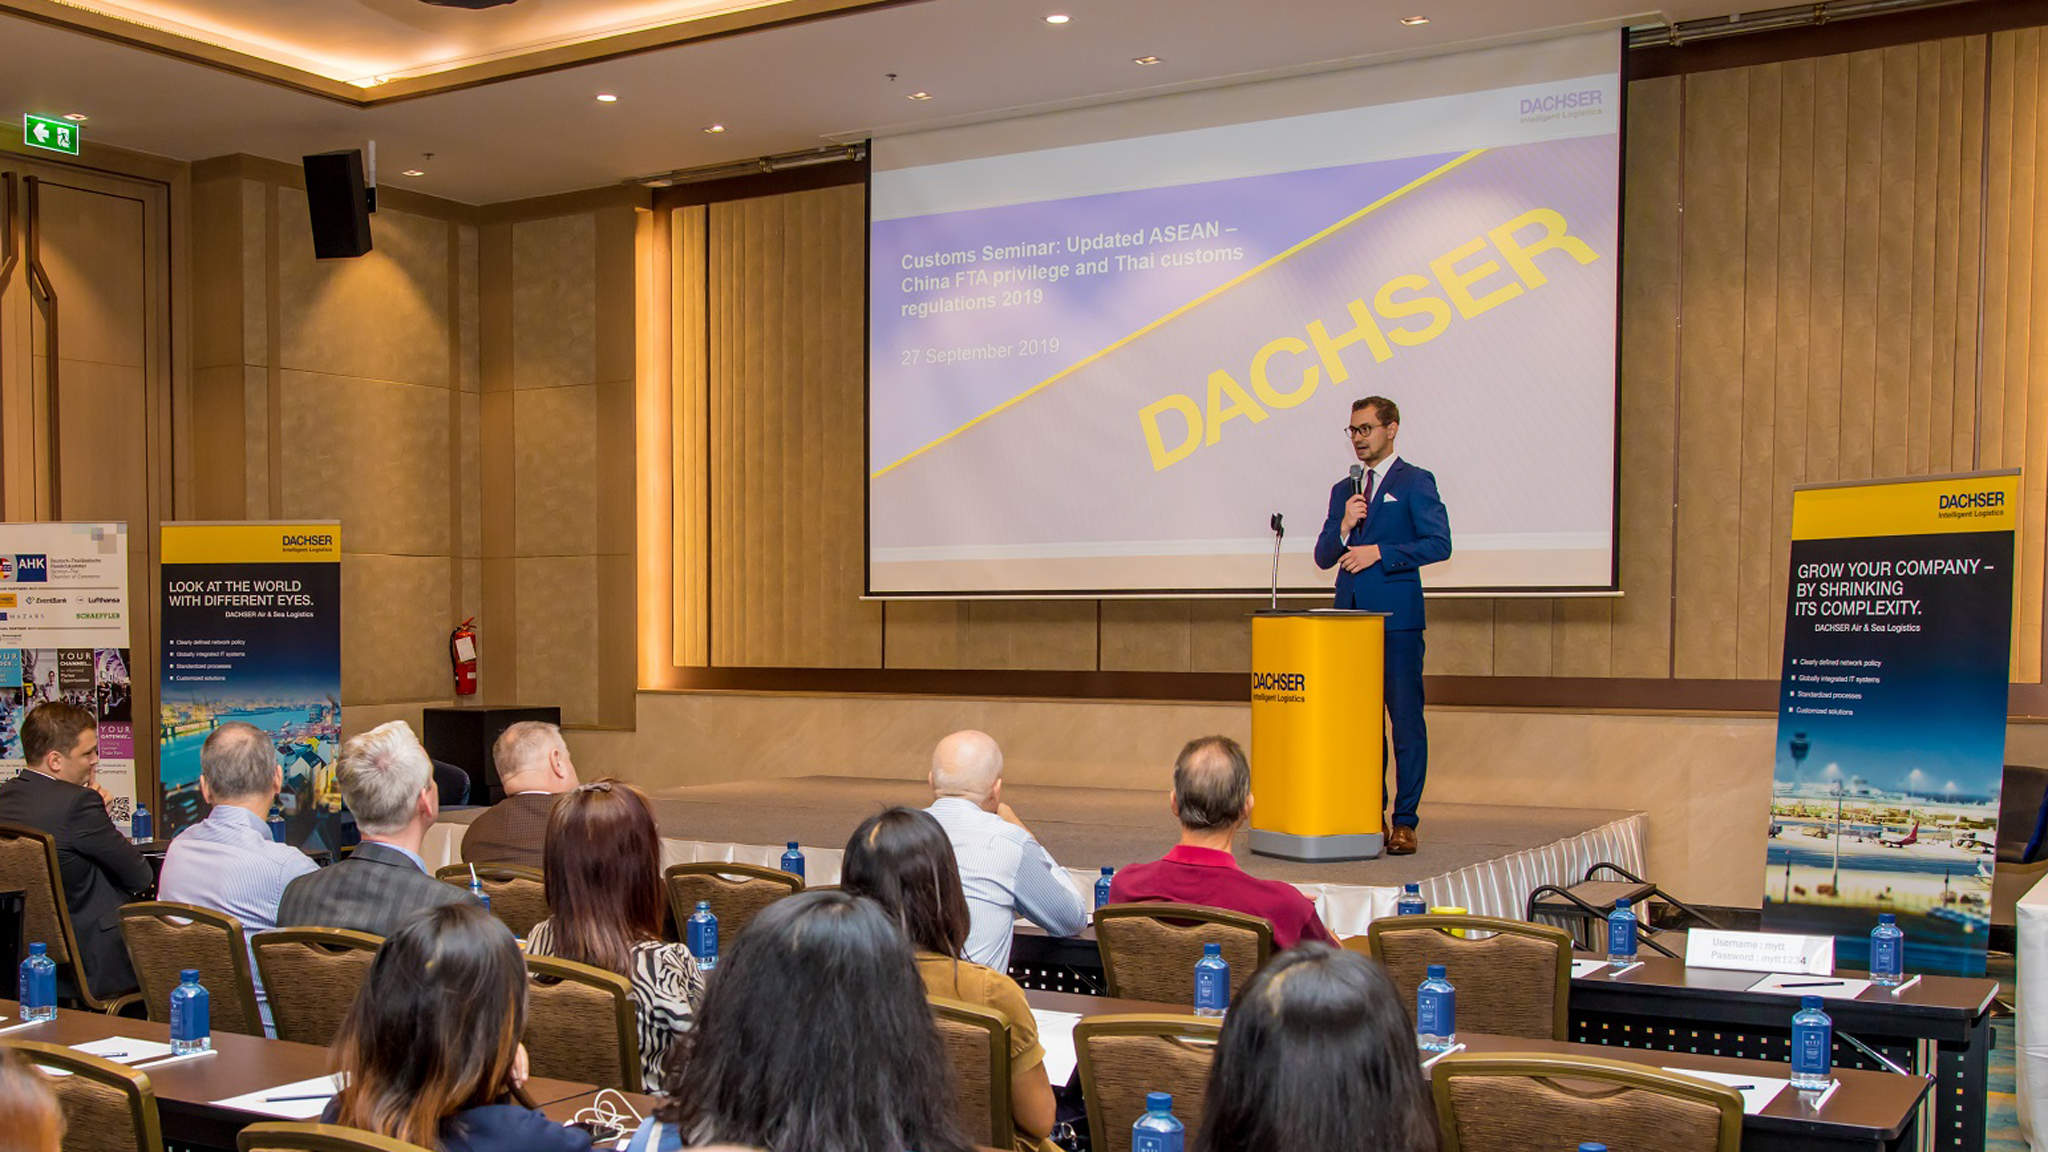 DACHSER Thailand hosted a customs clearance seminar focusing on the changes in customs clearance regulations brought by the upgraded ASEAN-China Free Trade Area.